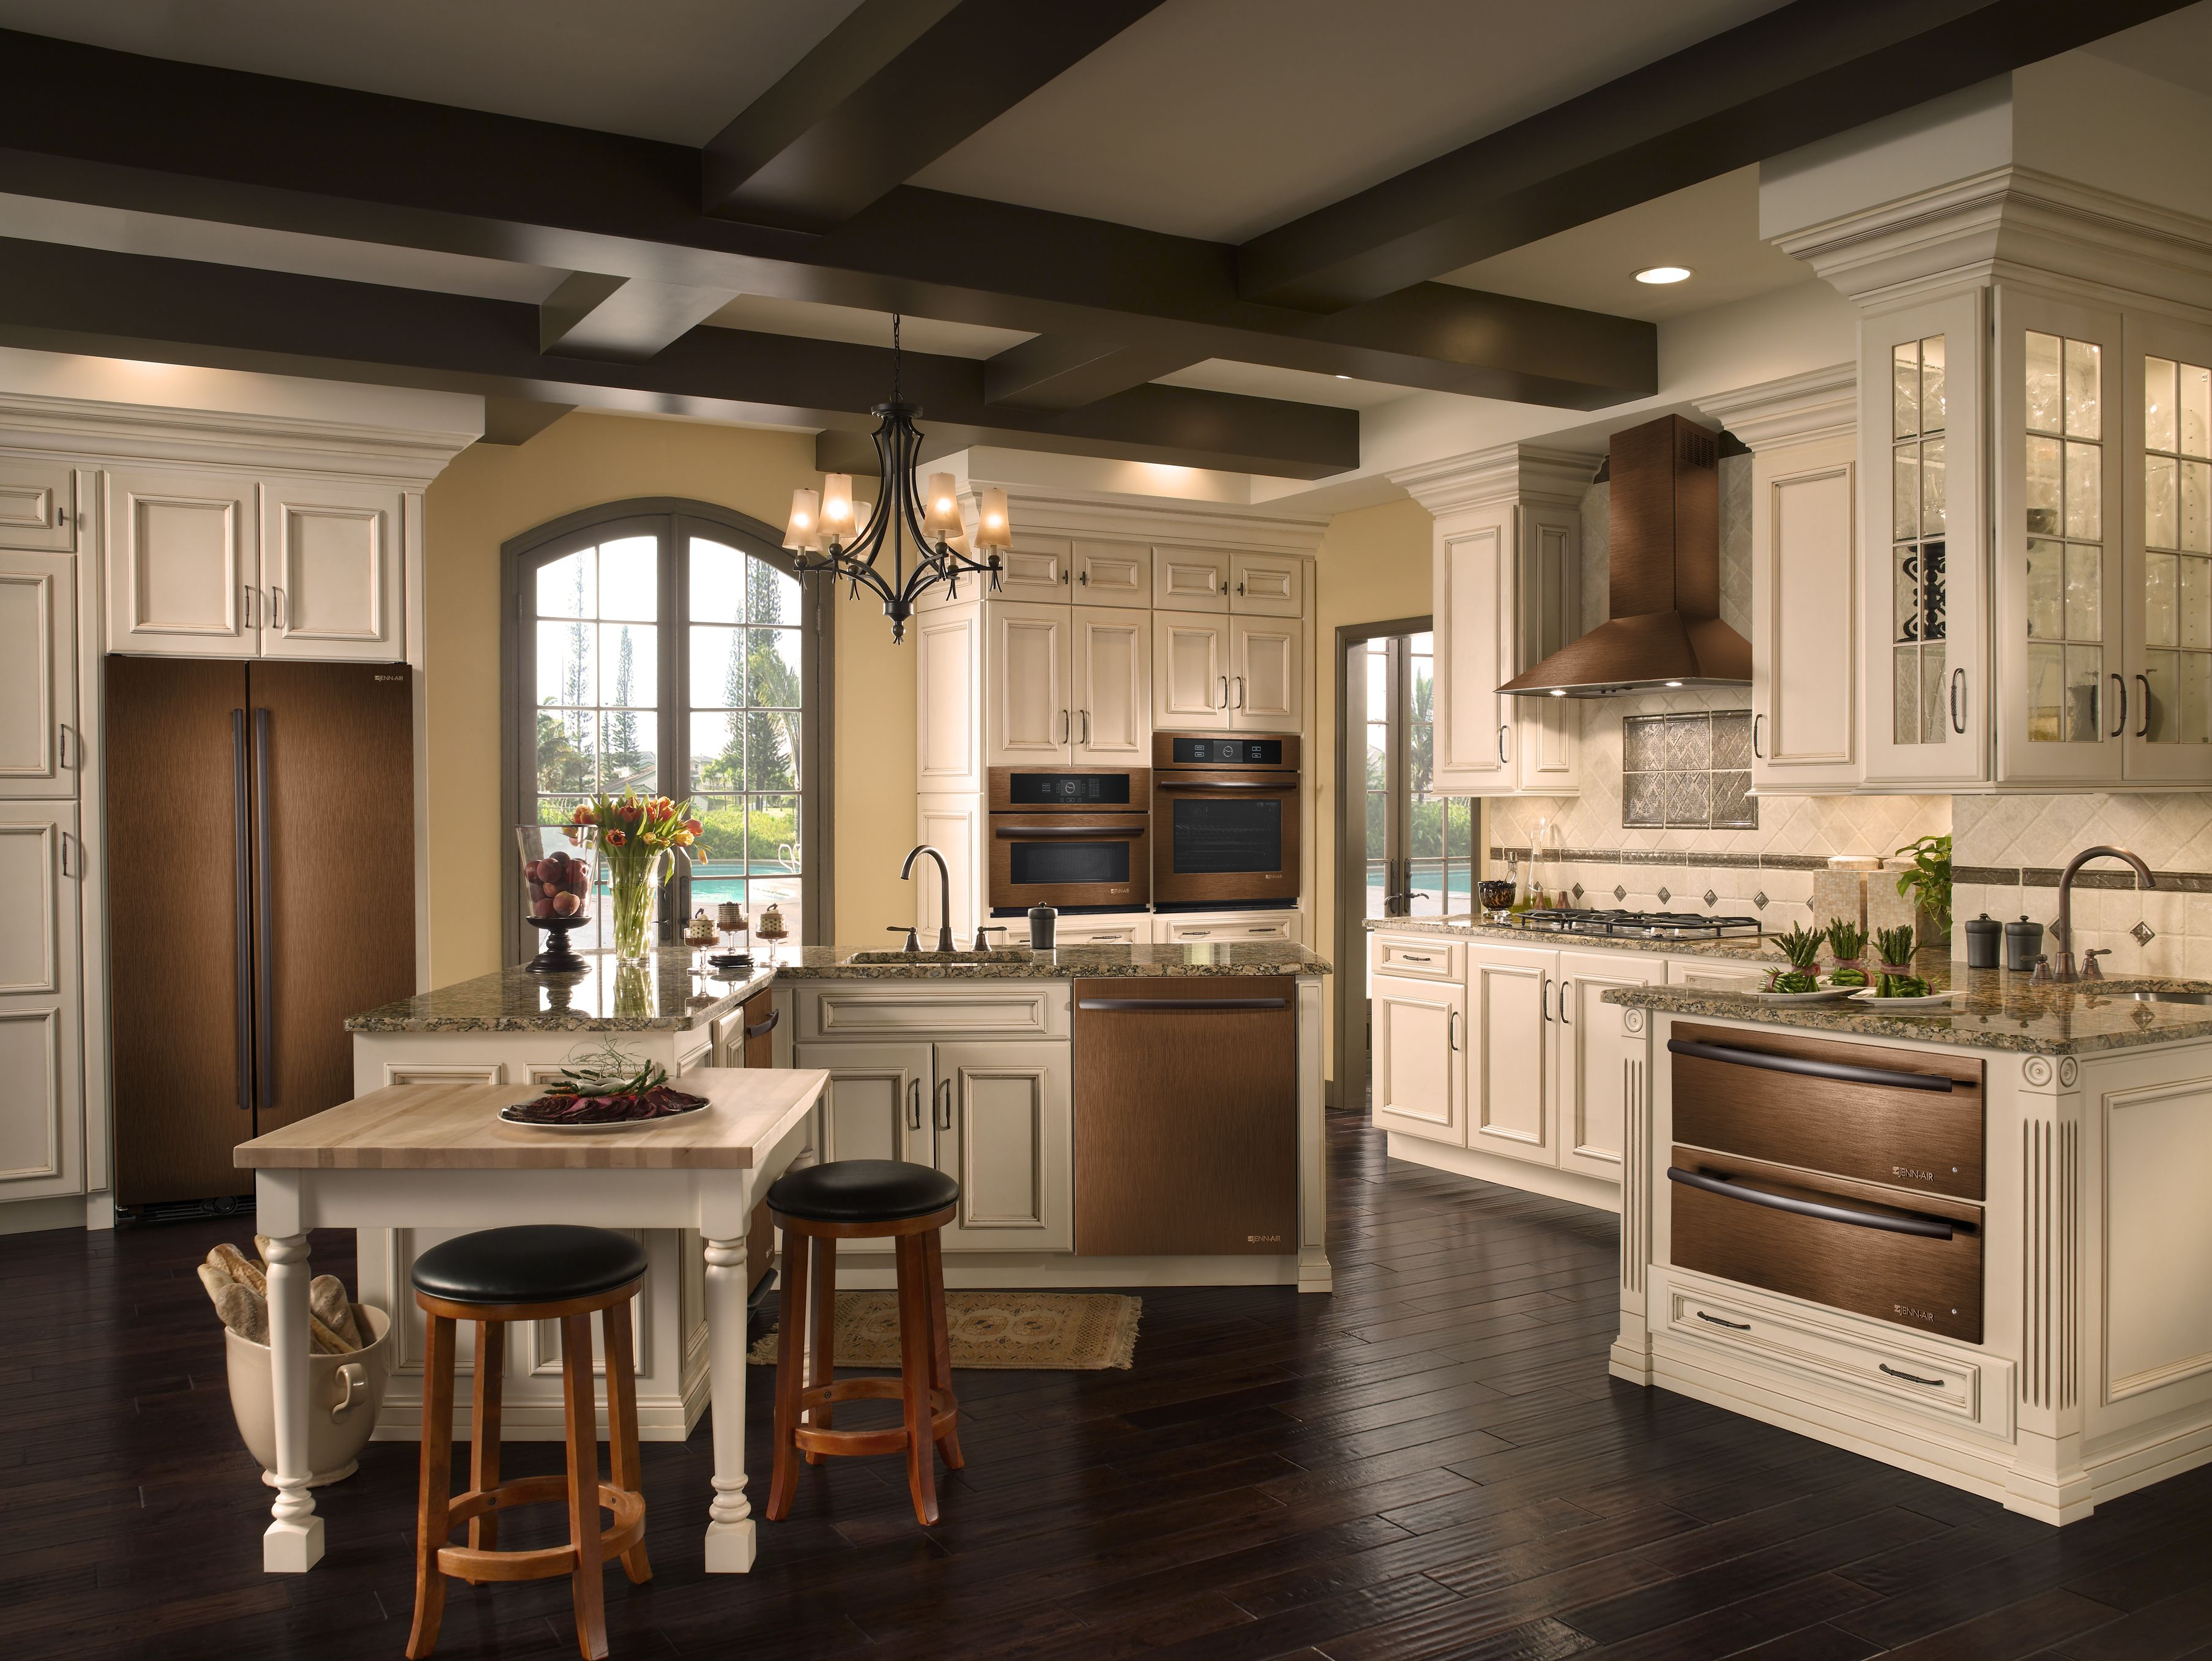 Oil Rubbed Bronze Kitchen Island Lighting A Splash Of Unusual And Elegant Color In The Kitchen Jenn Air